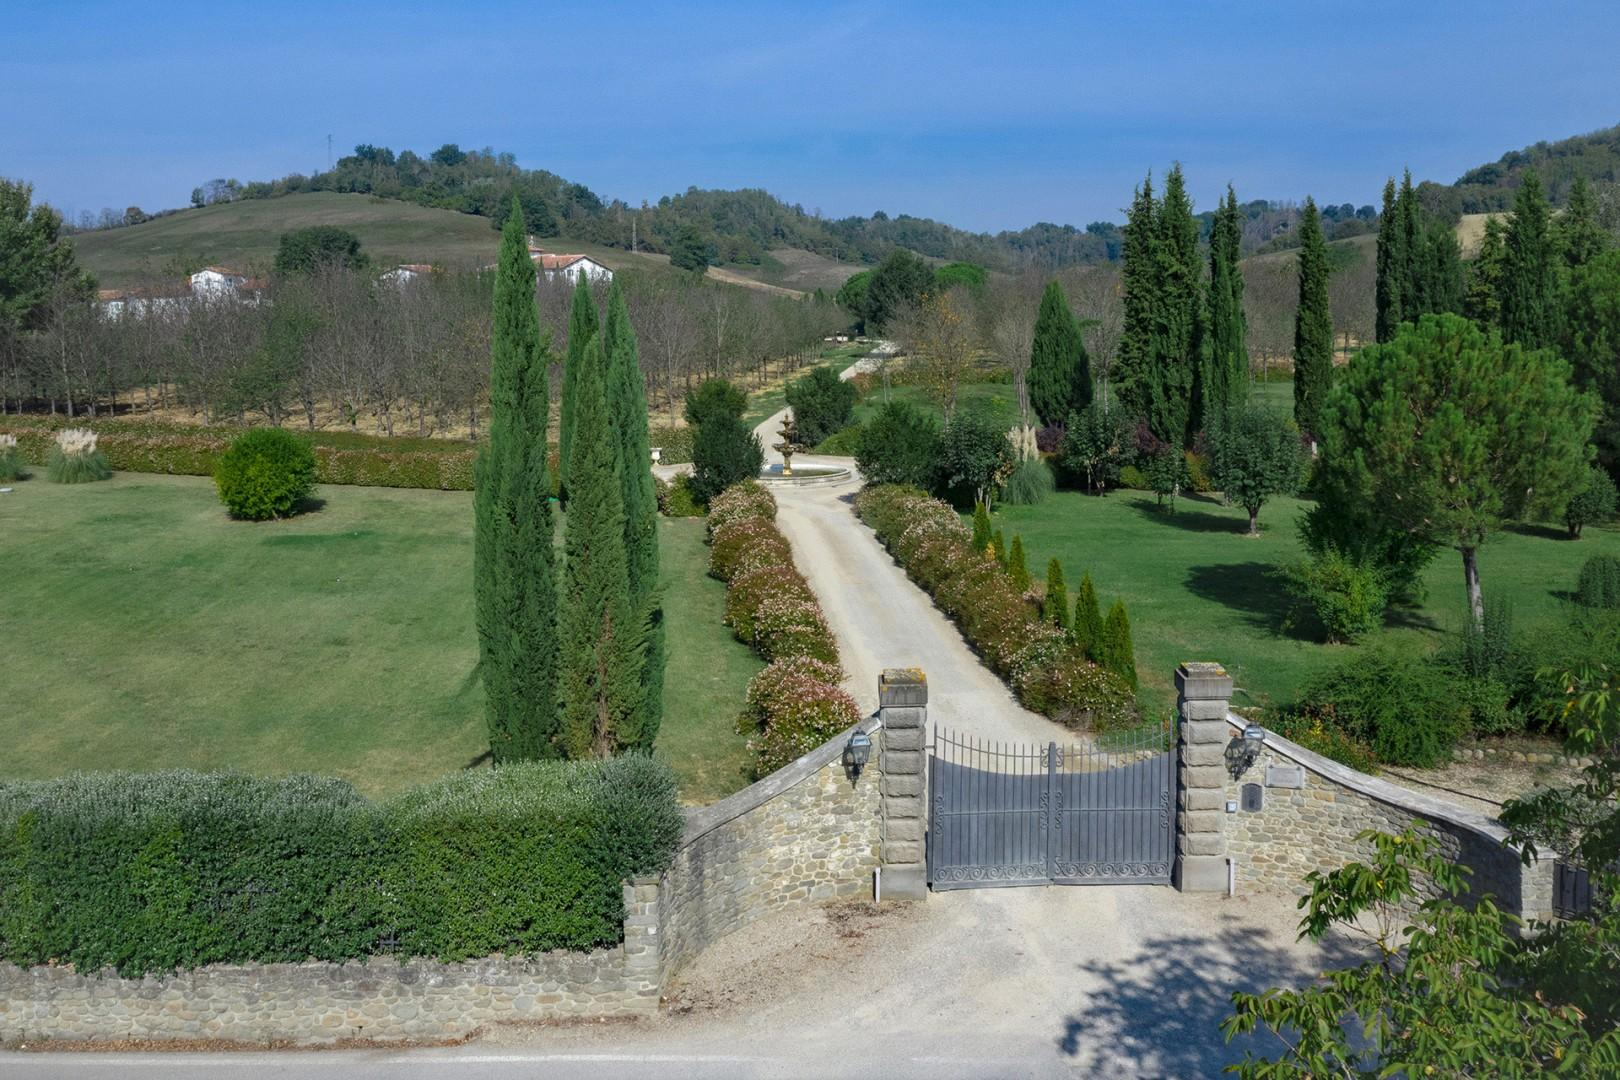 Main gate to the estate. Guests are provided electronic opener.